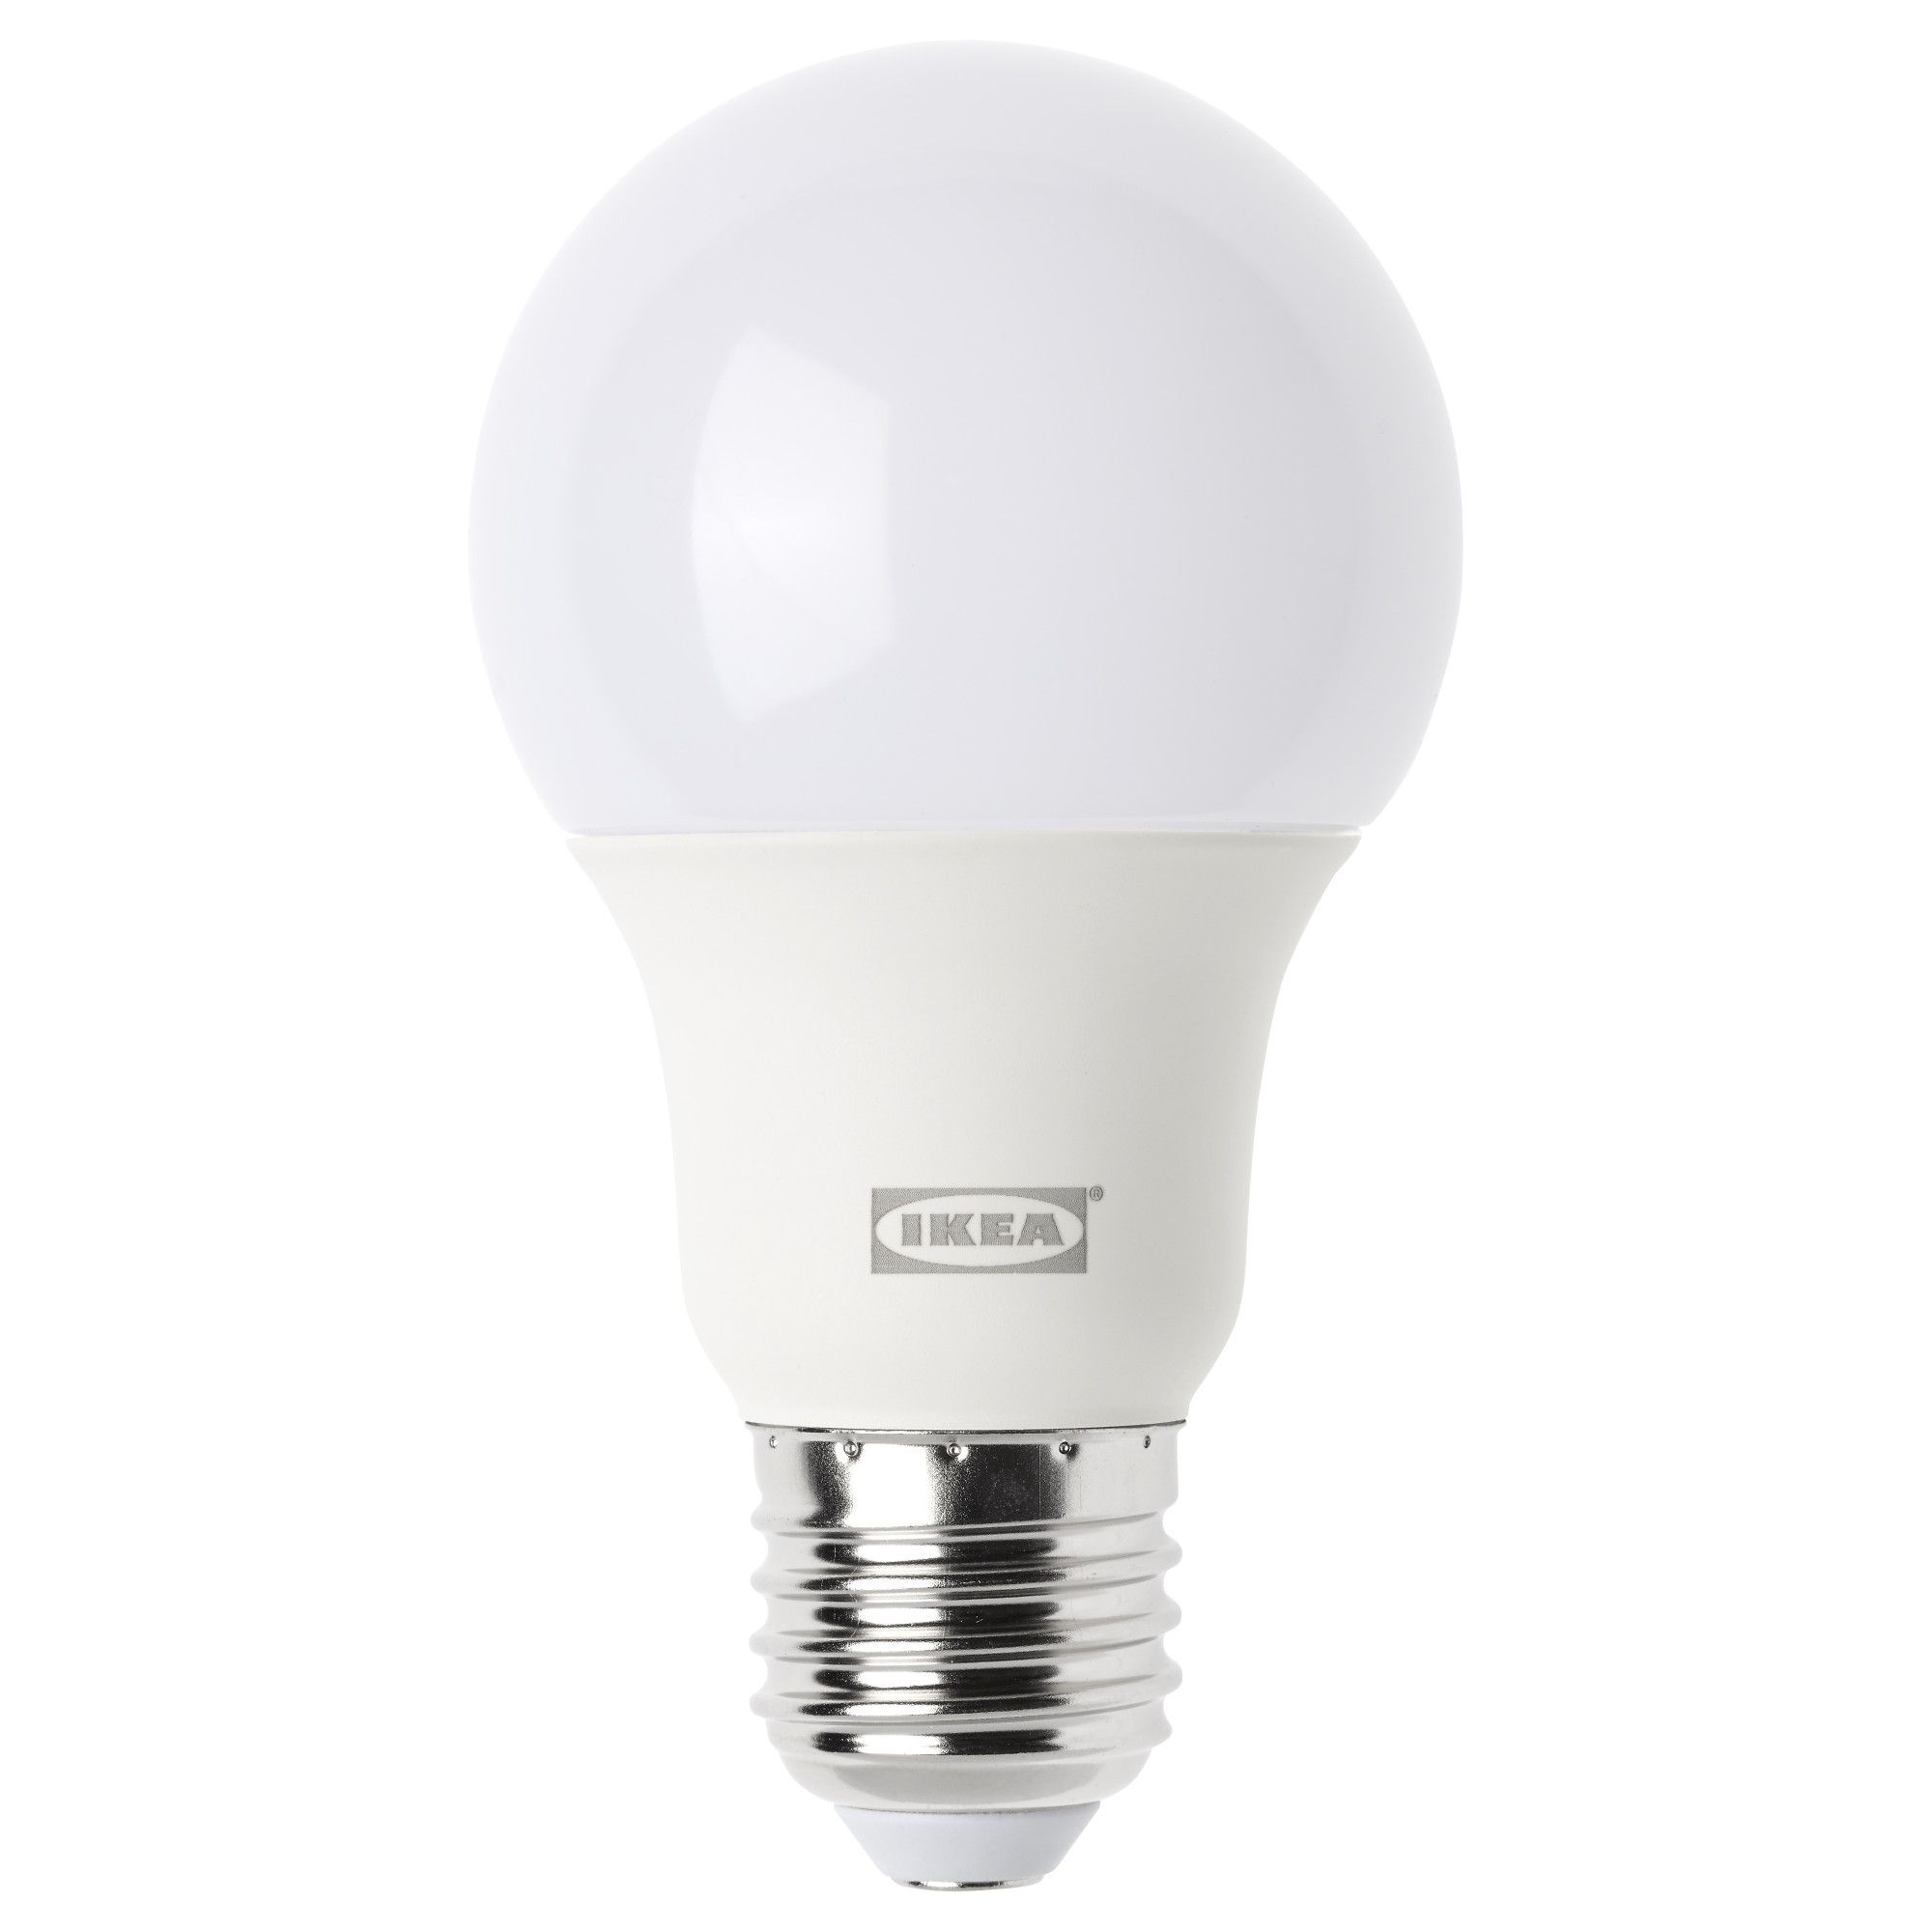 Ikea Oficialnyj Internet Magazin Mebeli Ikea Light Bulbs Led Bulb Light Bulbs